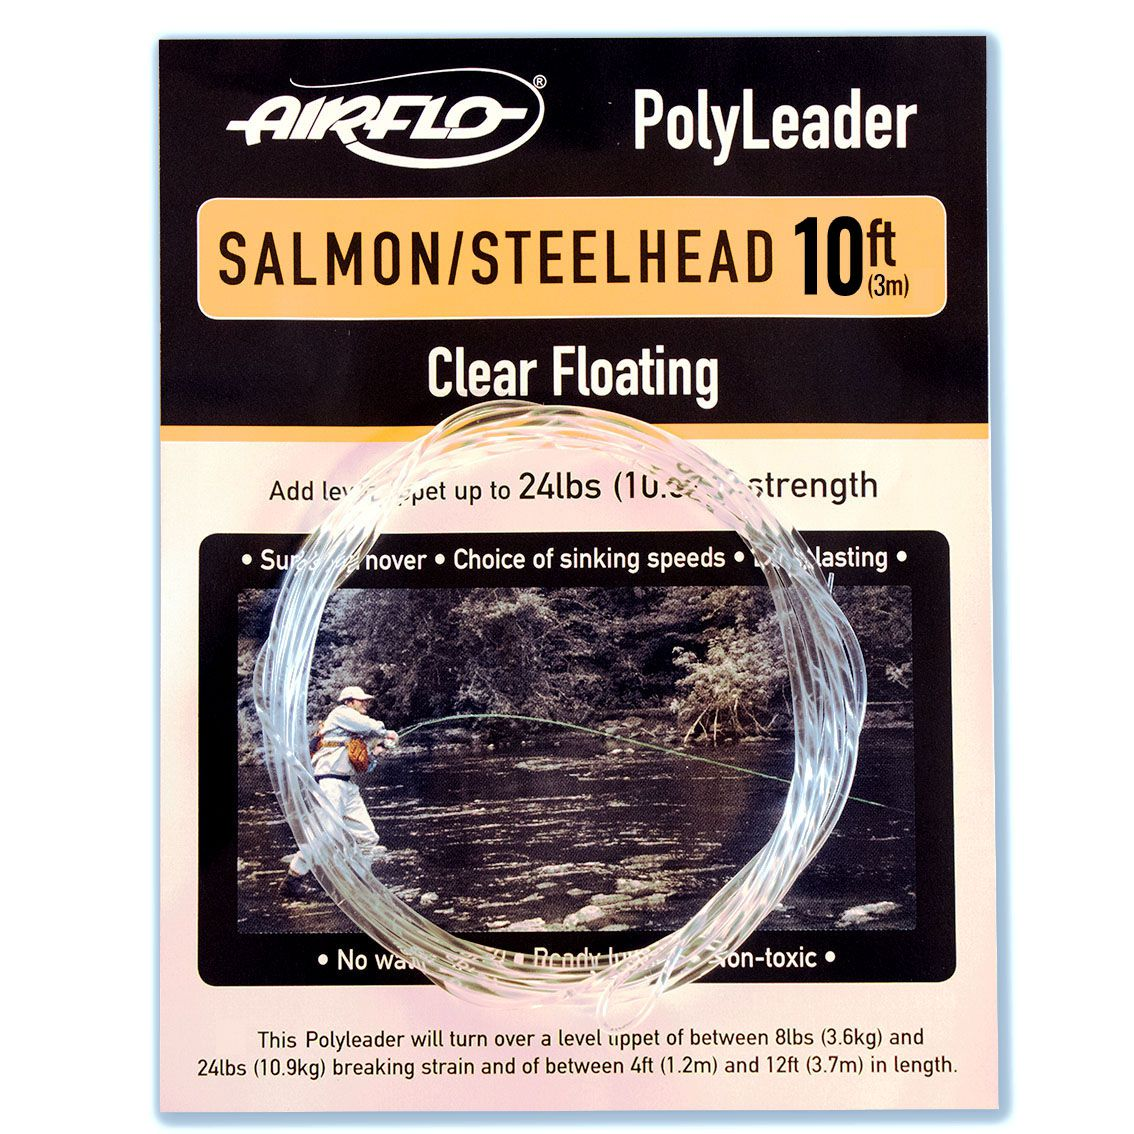 Polyleader Airflo Salmon Steelhead 10' (Floating)